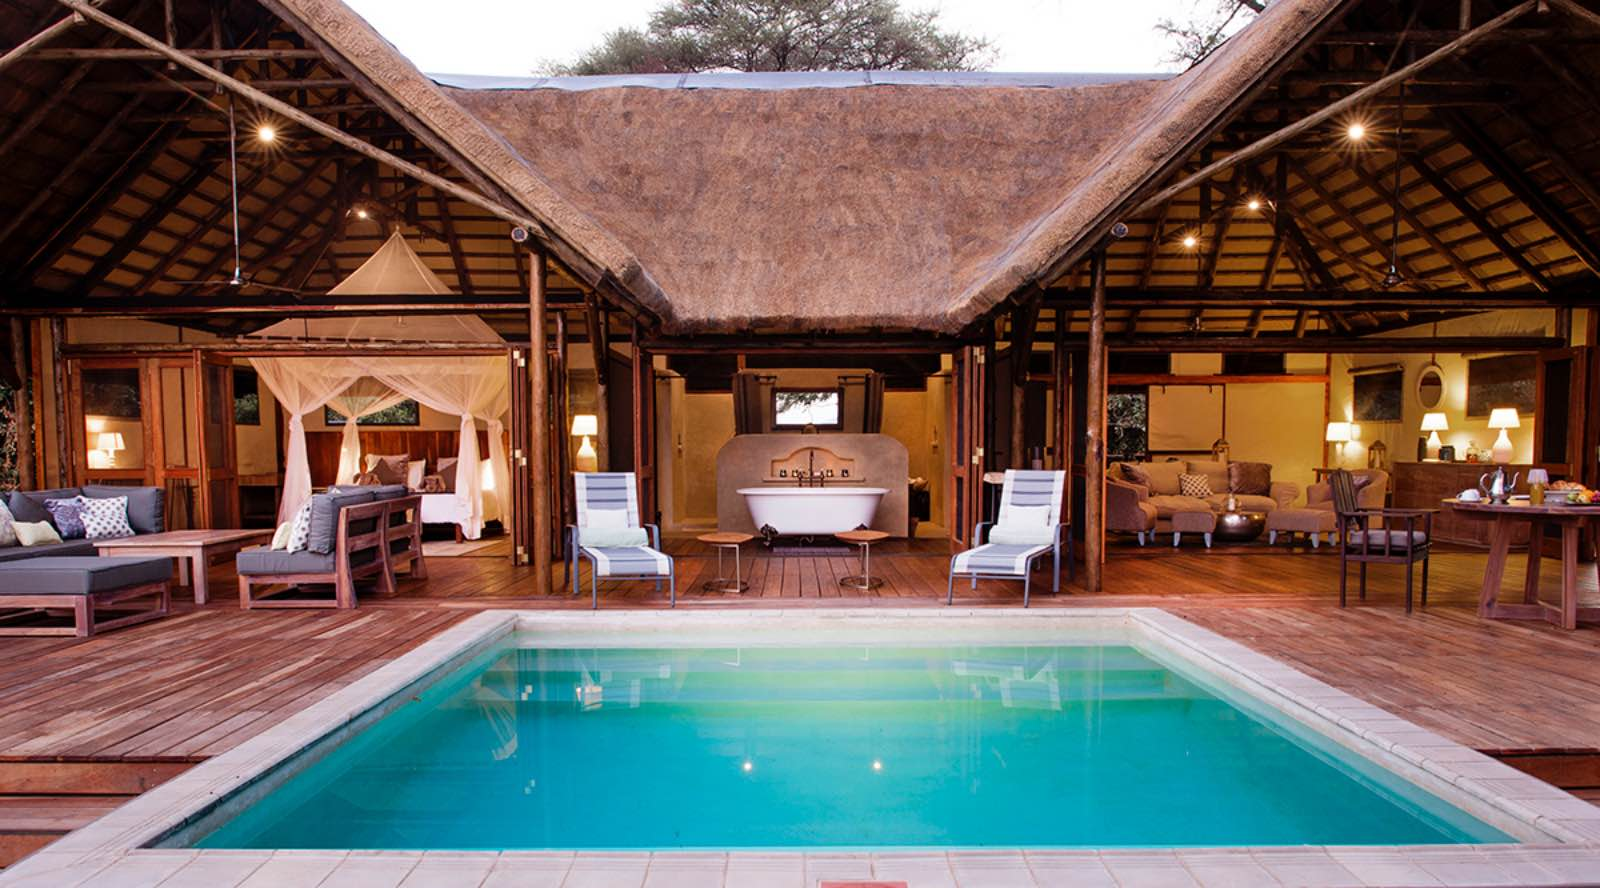 The luxurious Safari Suite at Chiawa Camp with pool at the centre